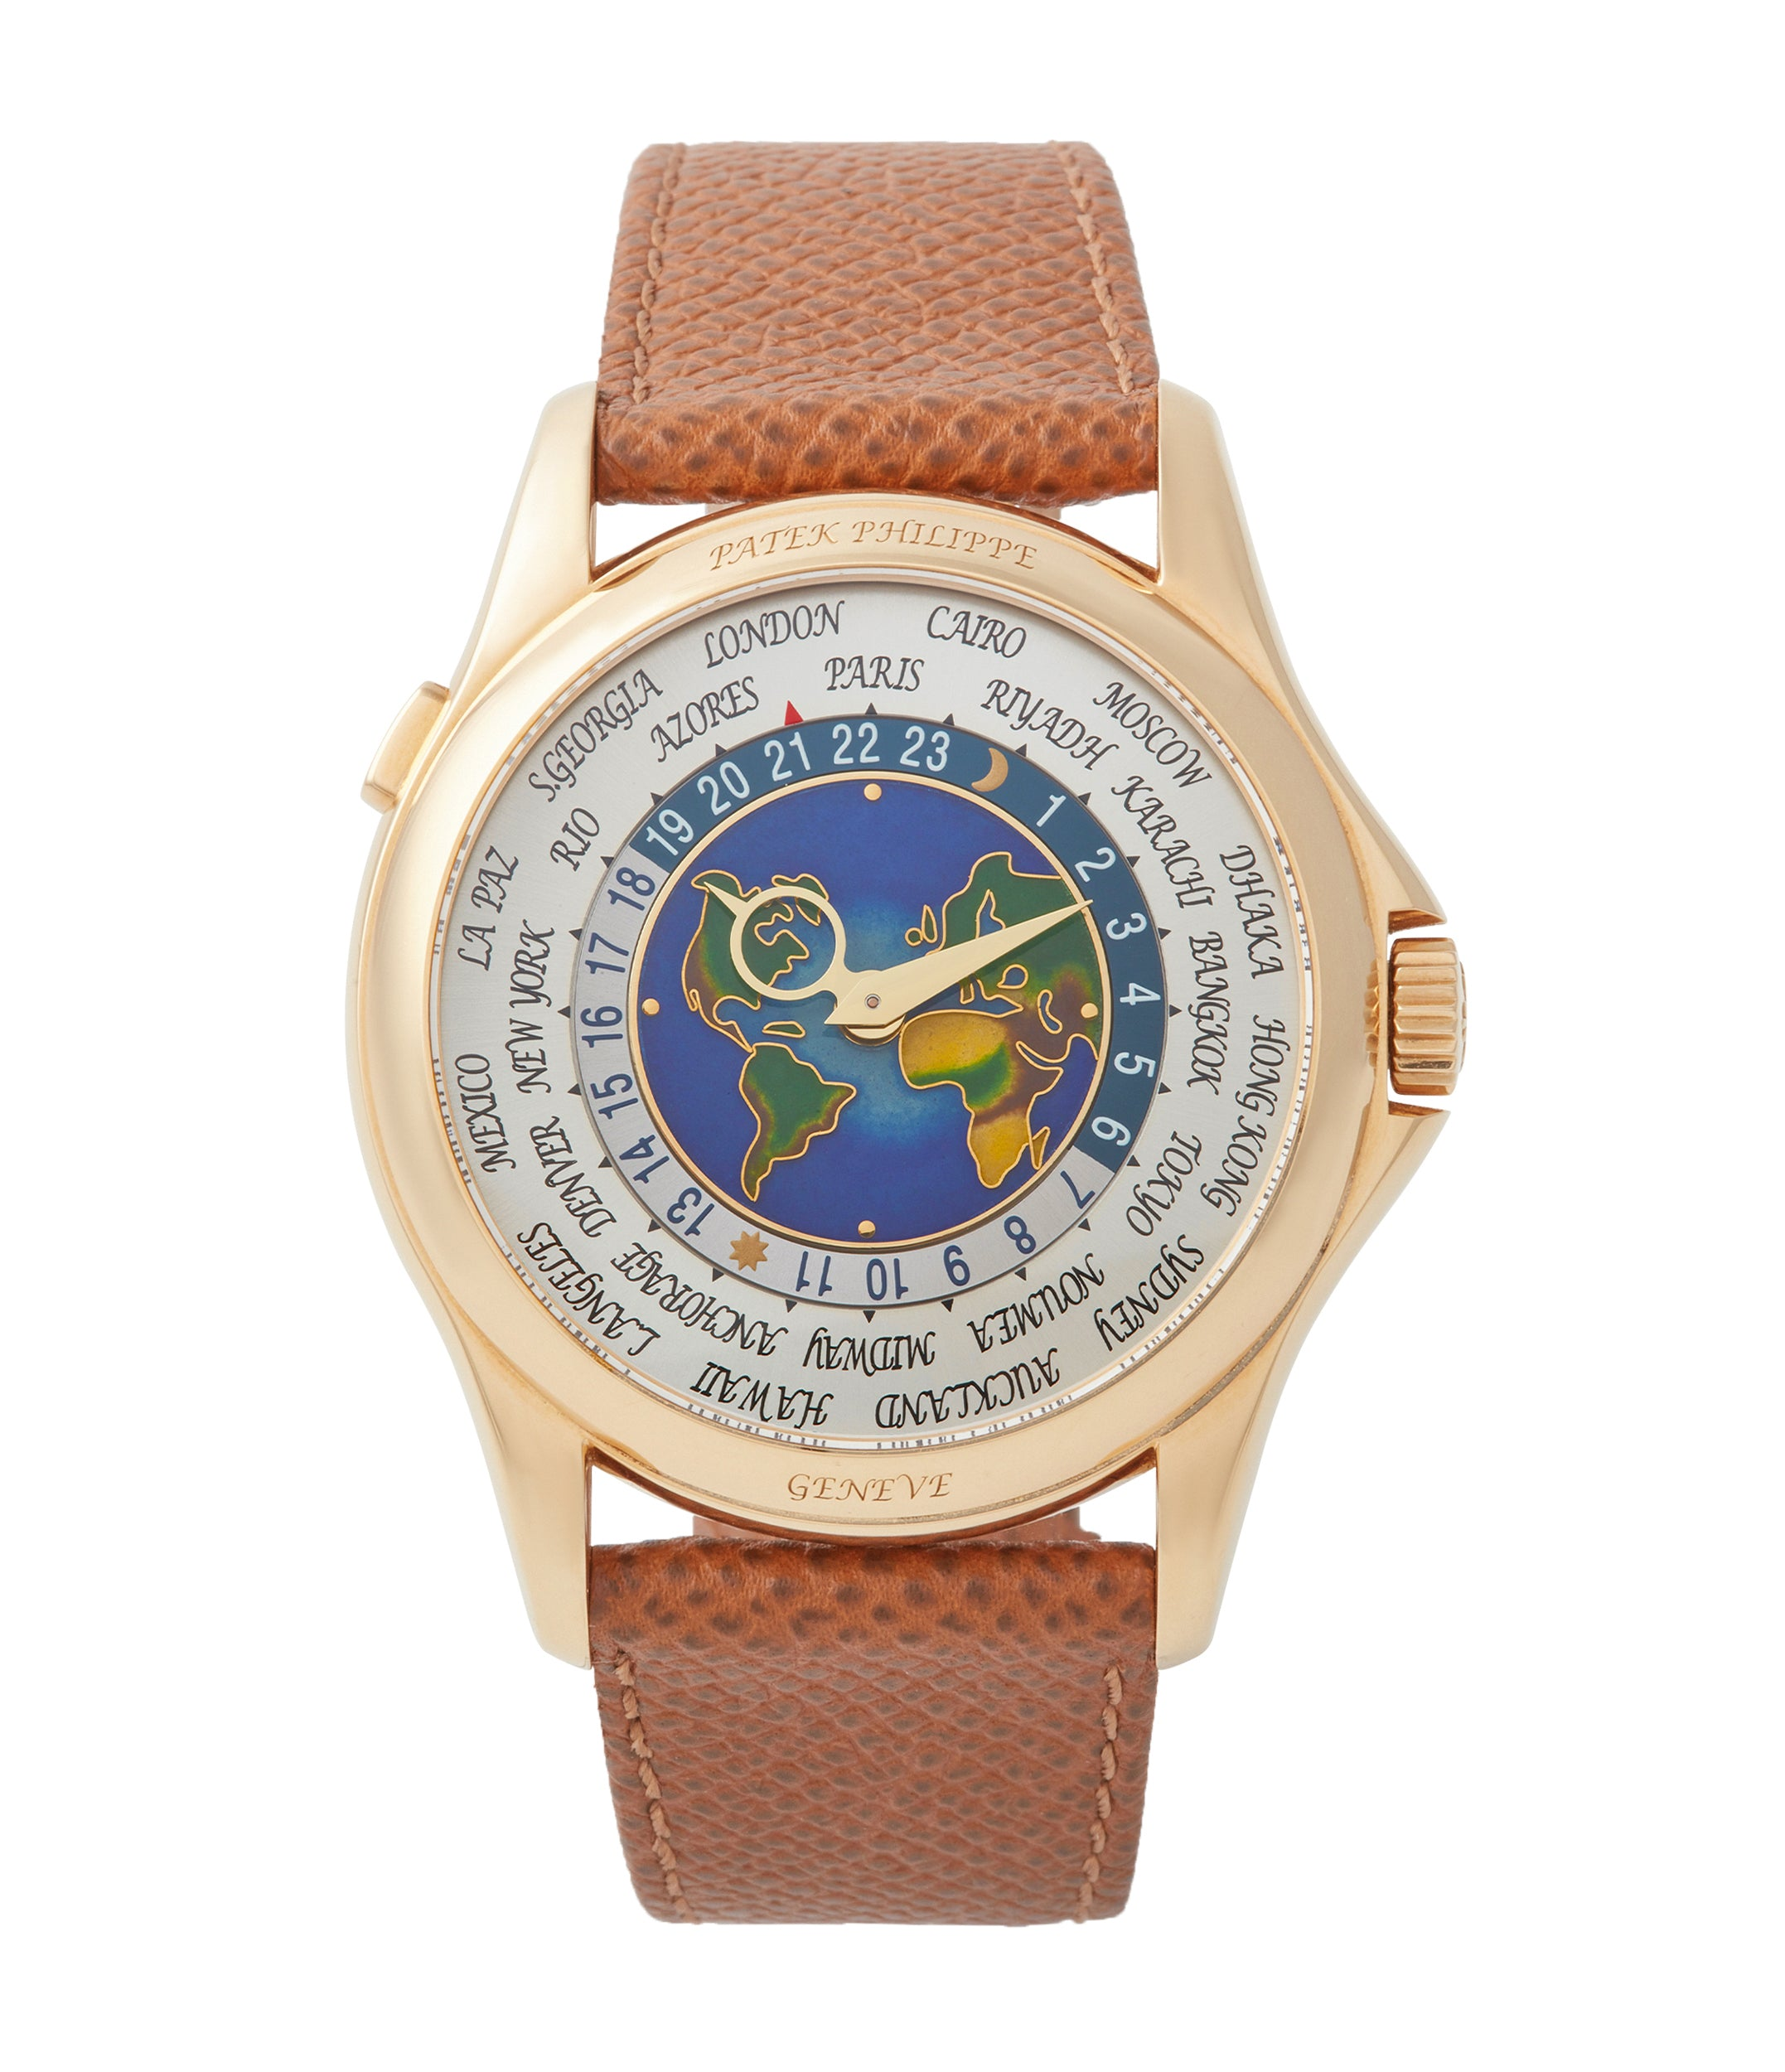 buy Patek Philippe 5131J-014 World Time yellow gold enamel dial traveller watch for sale online A Collected Man London UK specialist rare watches